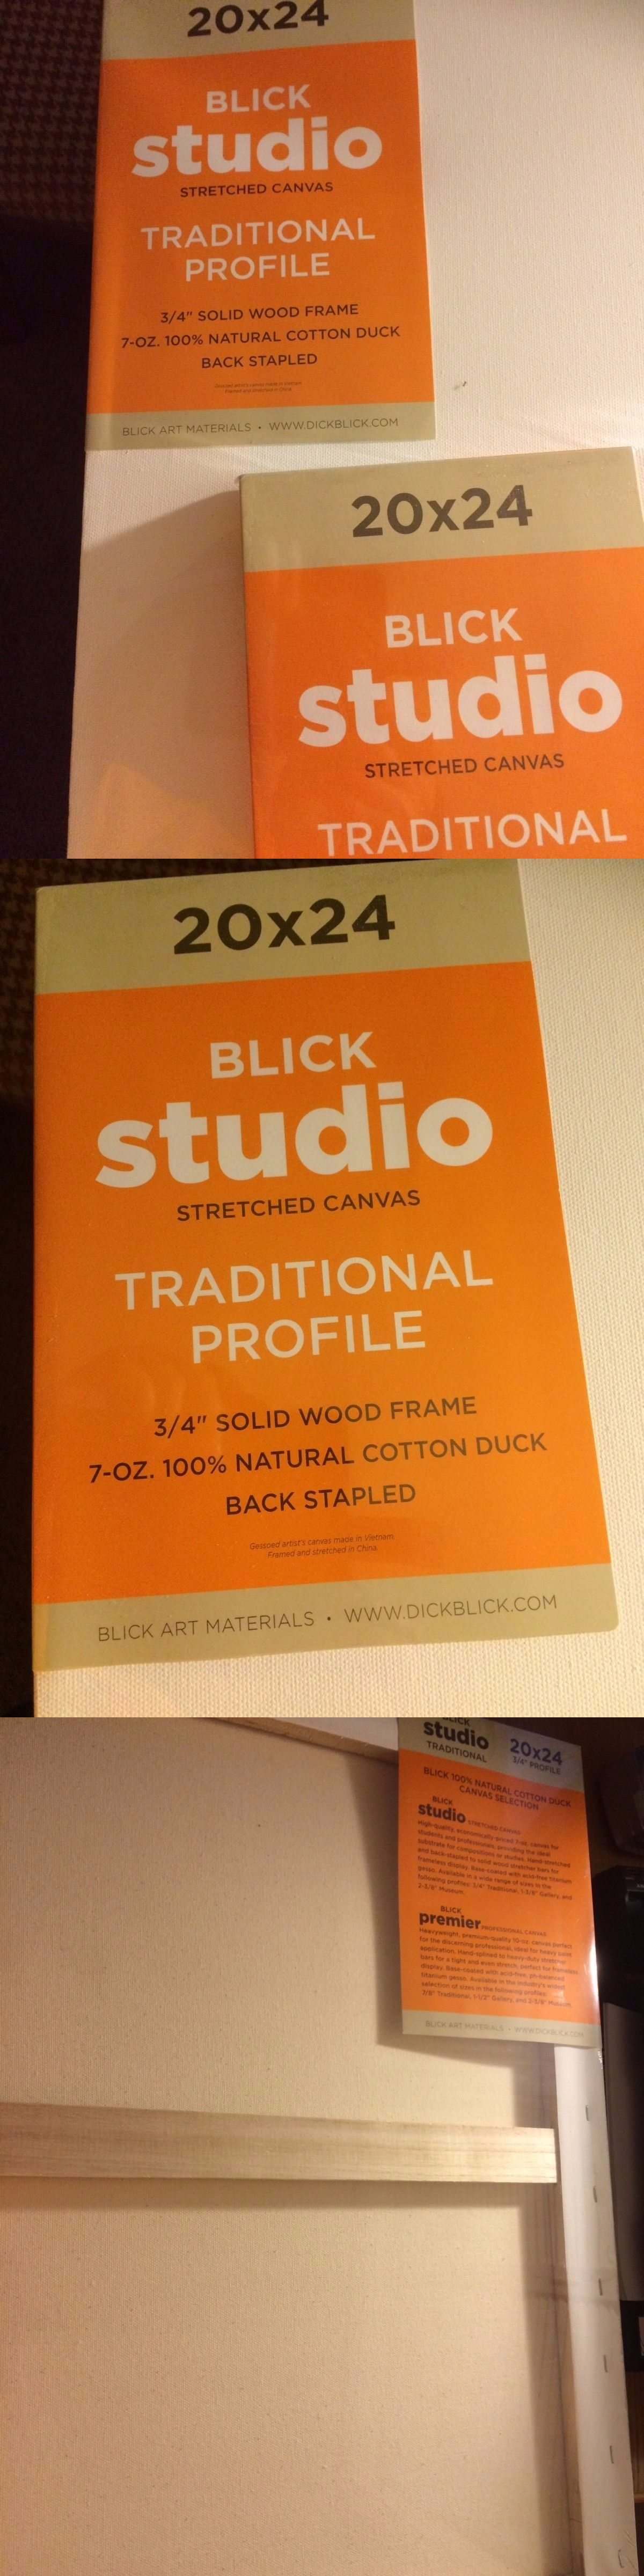 stretched canvas and boards 125229 blick studio 20x24 blank